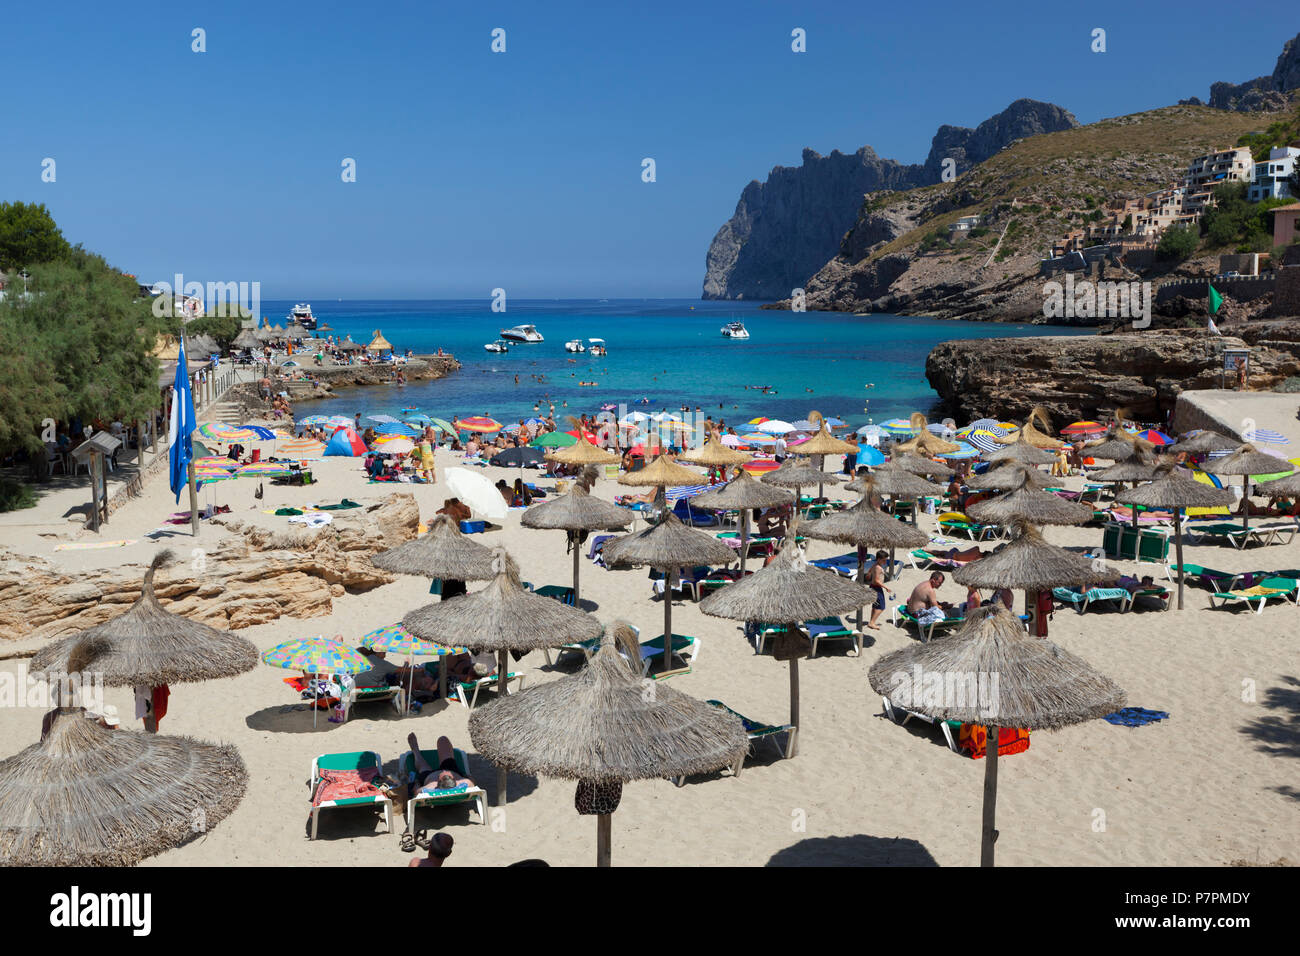 View over beach of Cala San Vincente in summer - Stock Image